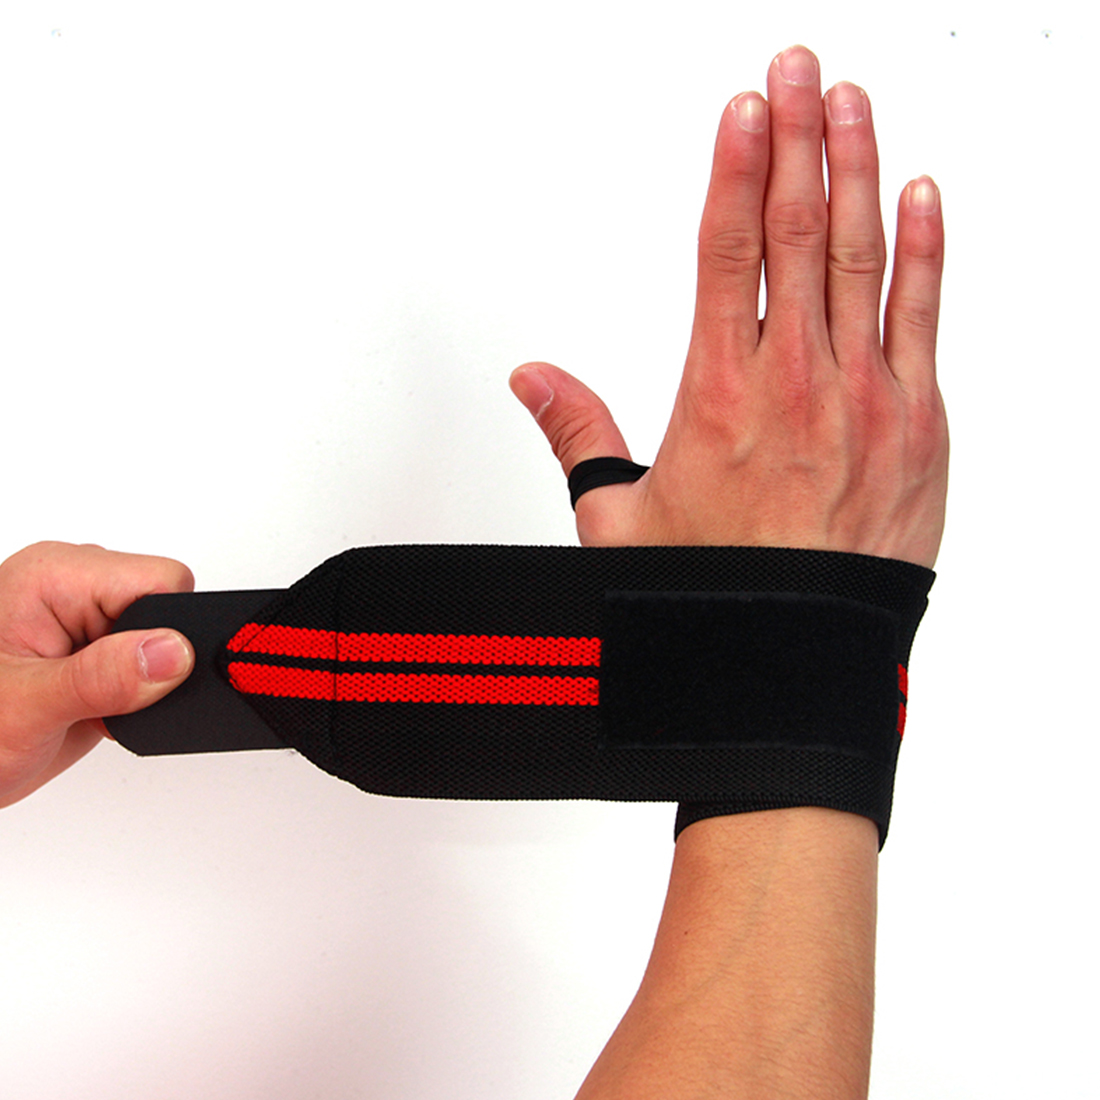 Weight-Lifting-Gloves Wraps Barbell-Straps Bar Grip Wrist-Support Hand-Protection Gym